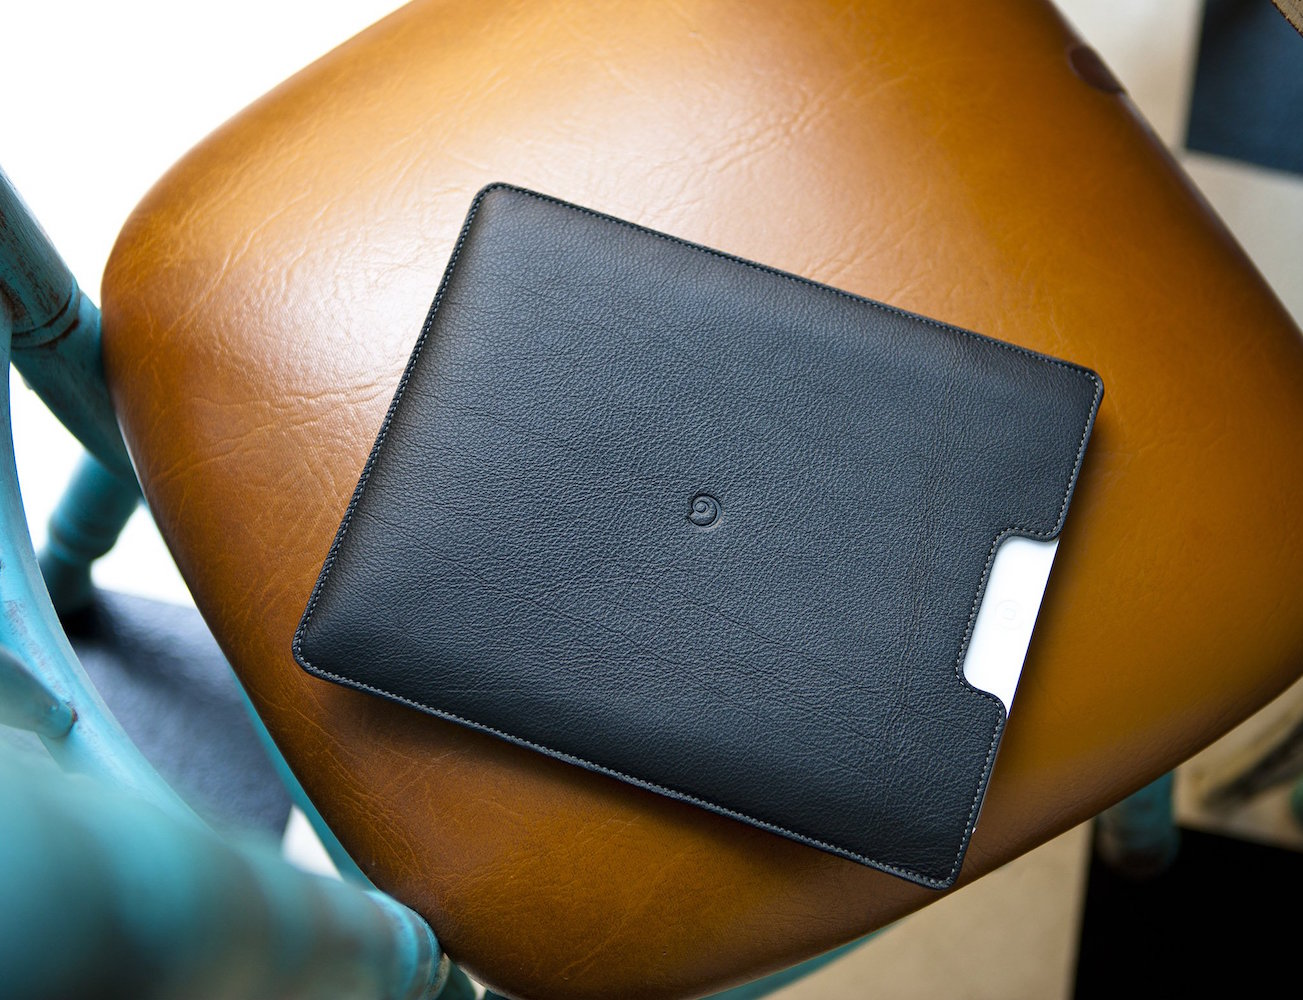 leather-ipad-sleeve-by-danny-p-04